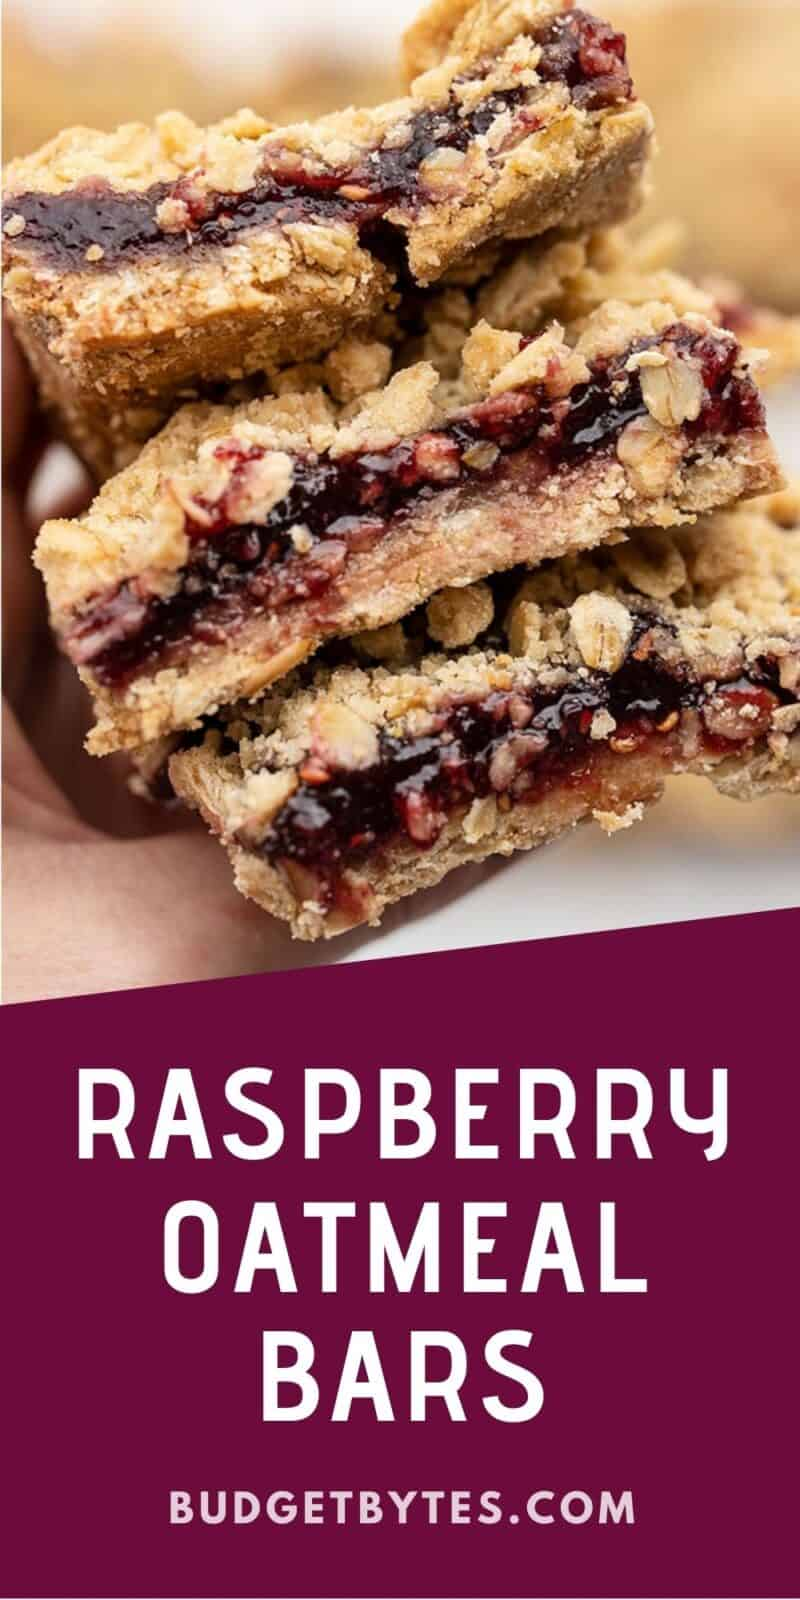 A stack of raspberry oatmeal bars held in a hand, title text at the bottom